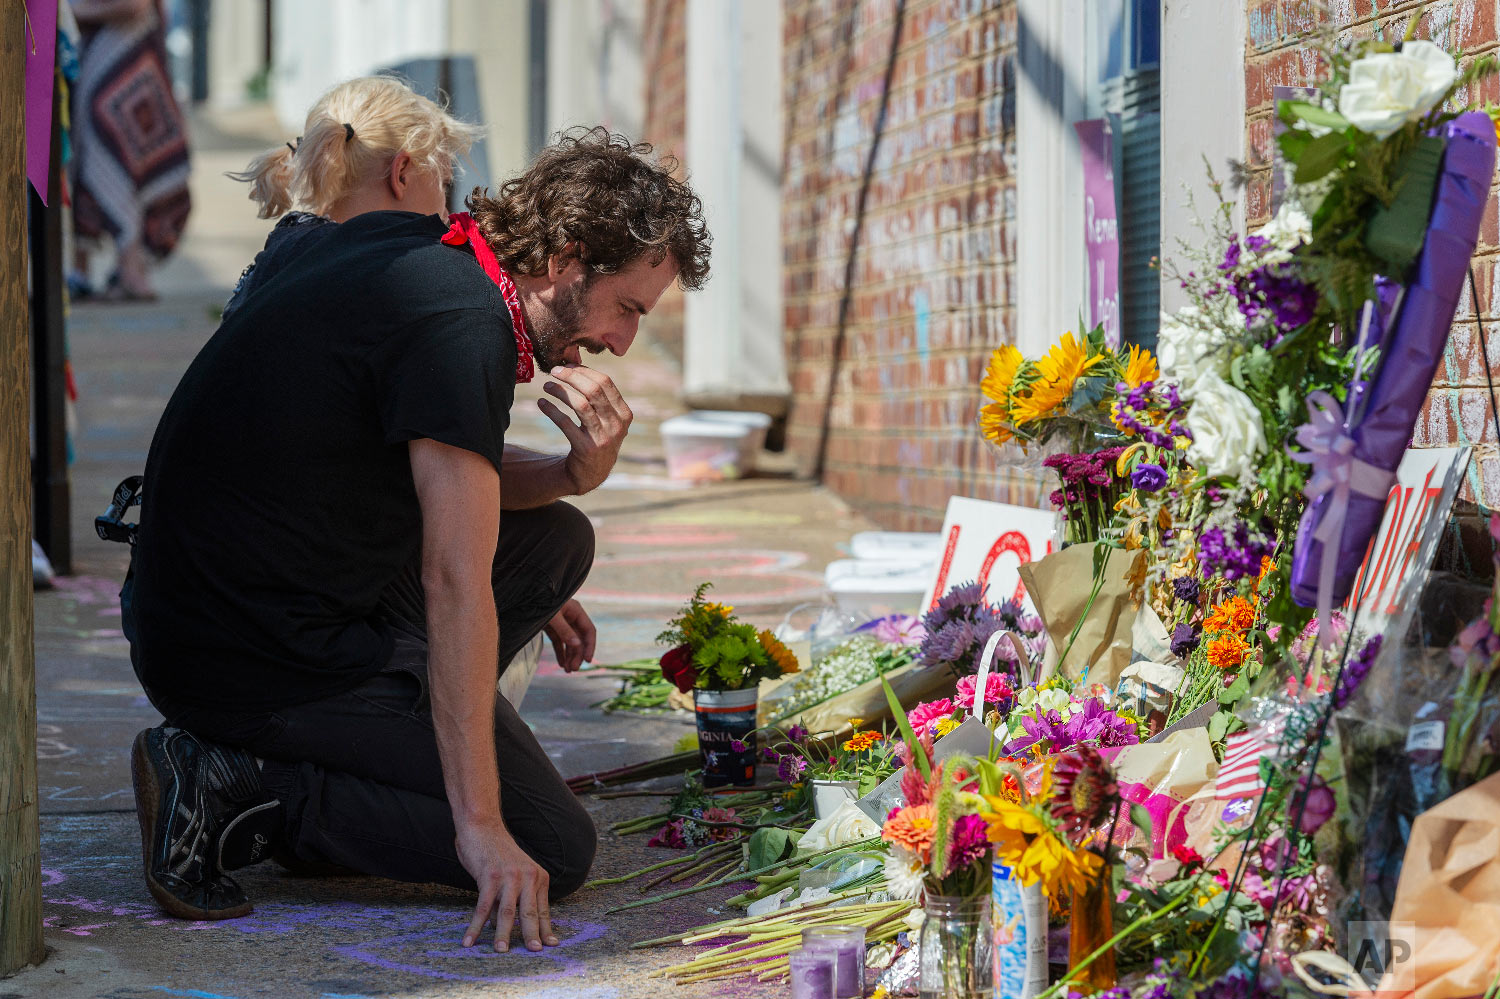 Charlie Spearman, foreground, and Jae Em Cafico kneel at a memorial dedicated to Heather Heyer who was killed during last year's Unite the Right rally, in Charlottesville, Va., Saturday, Aug. 11, 2018. The city of Charlottesville plans to mark Sunday's anniversary of a deadly gathering of white supremacists with a rally against racial hatred. (Craig Hudson/Charleston Gazette-Mail via AP)